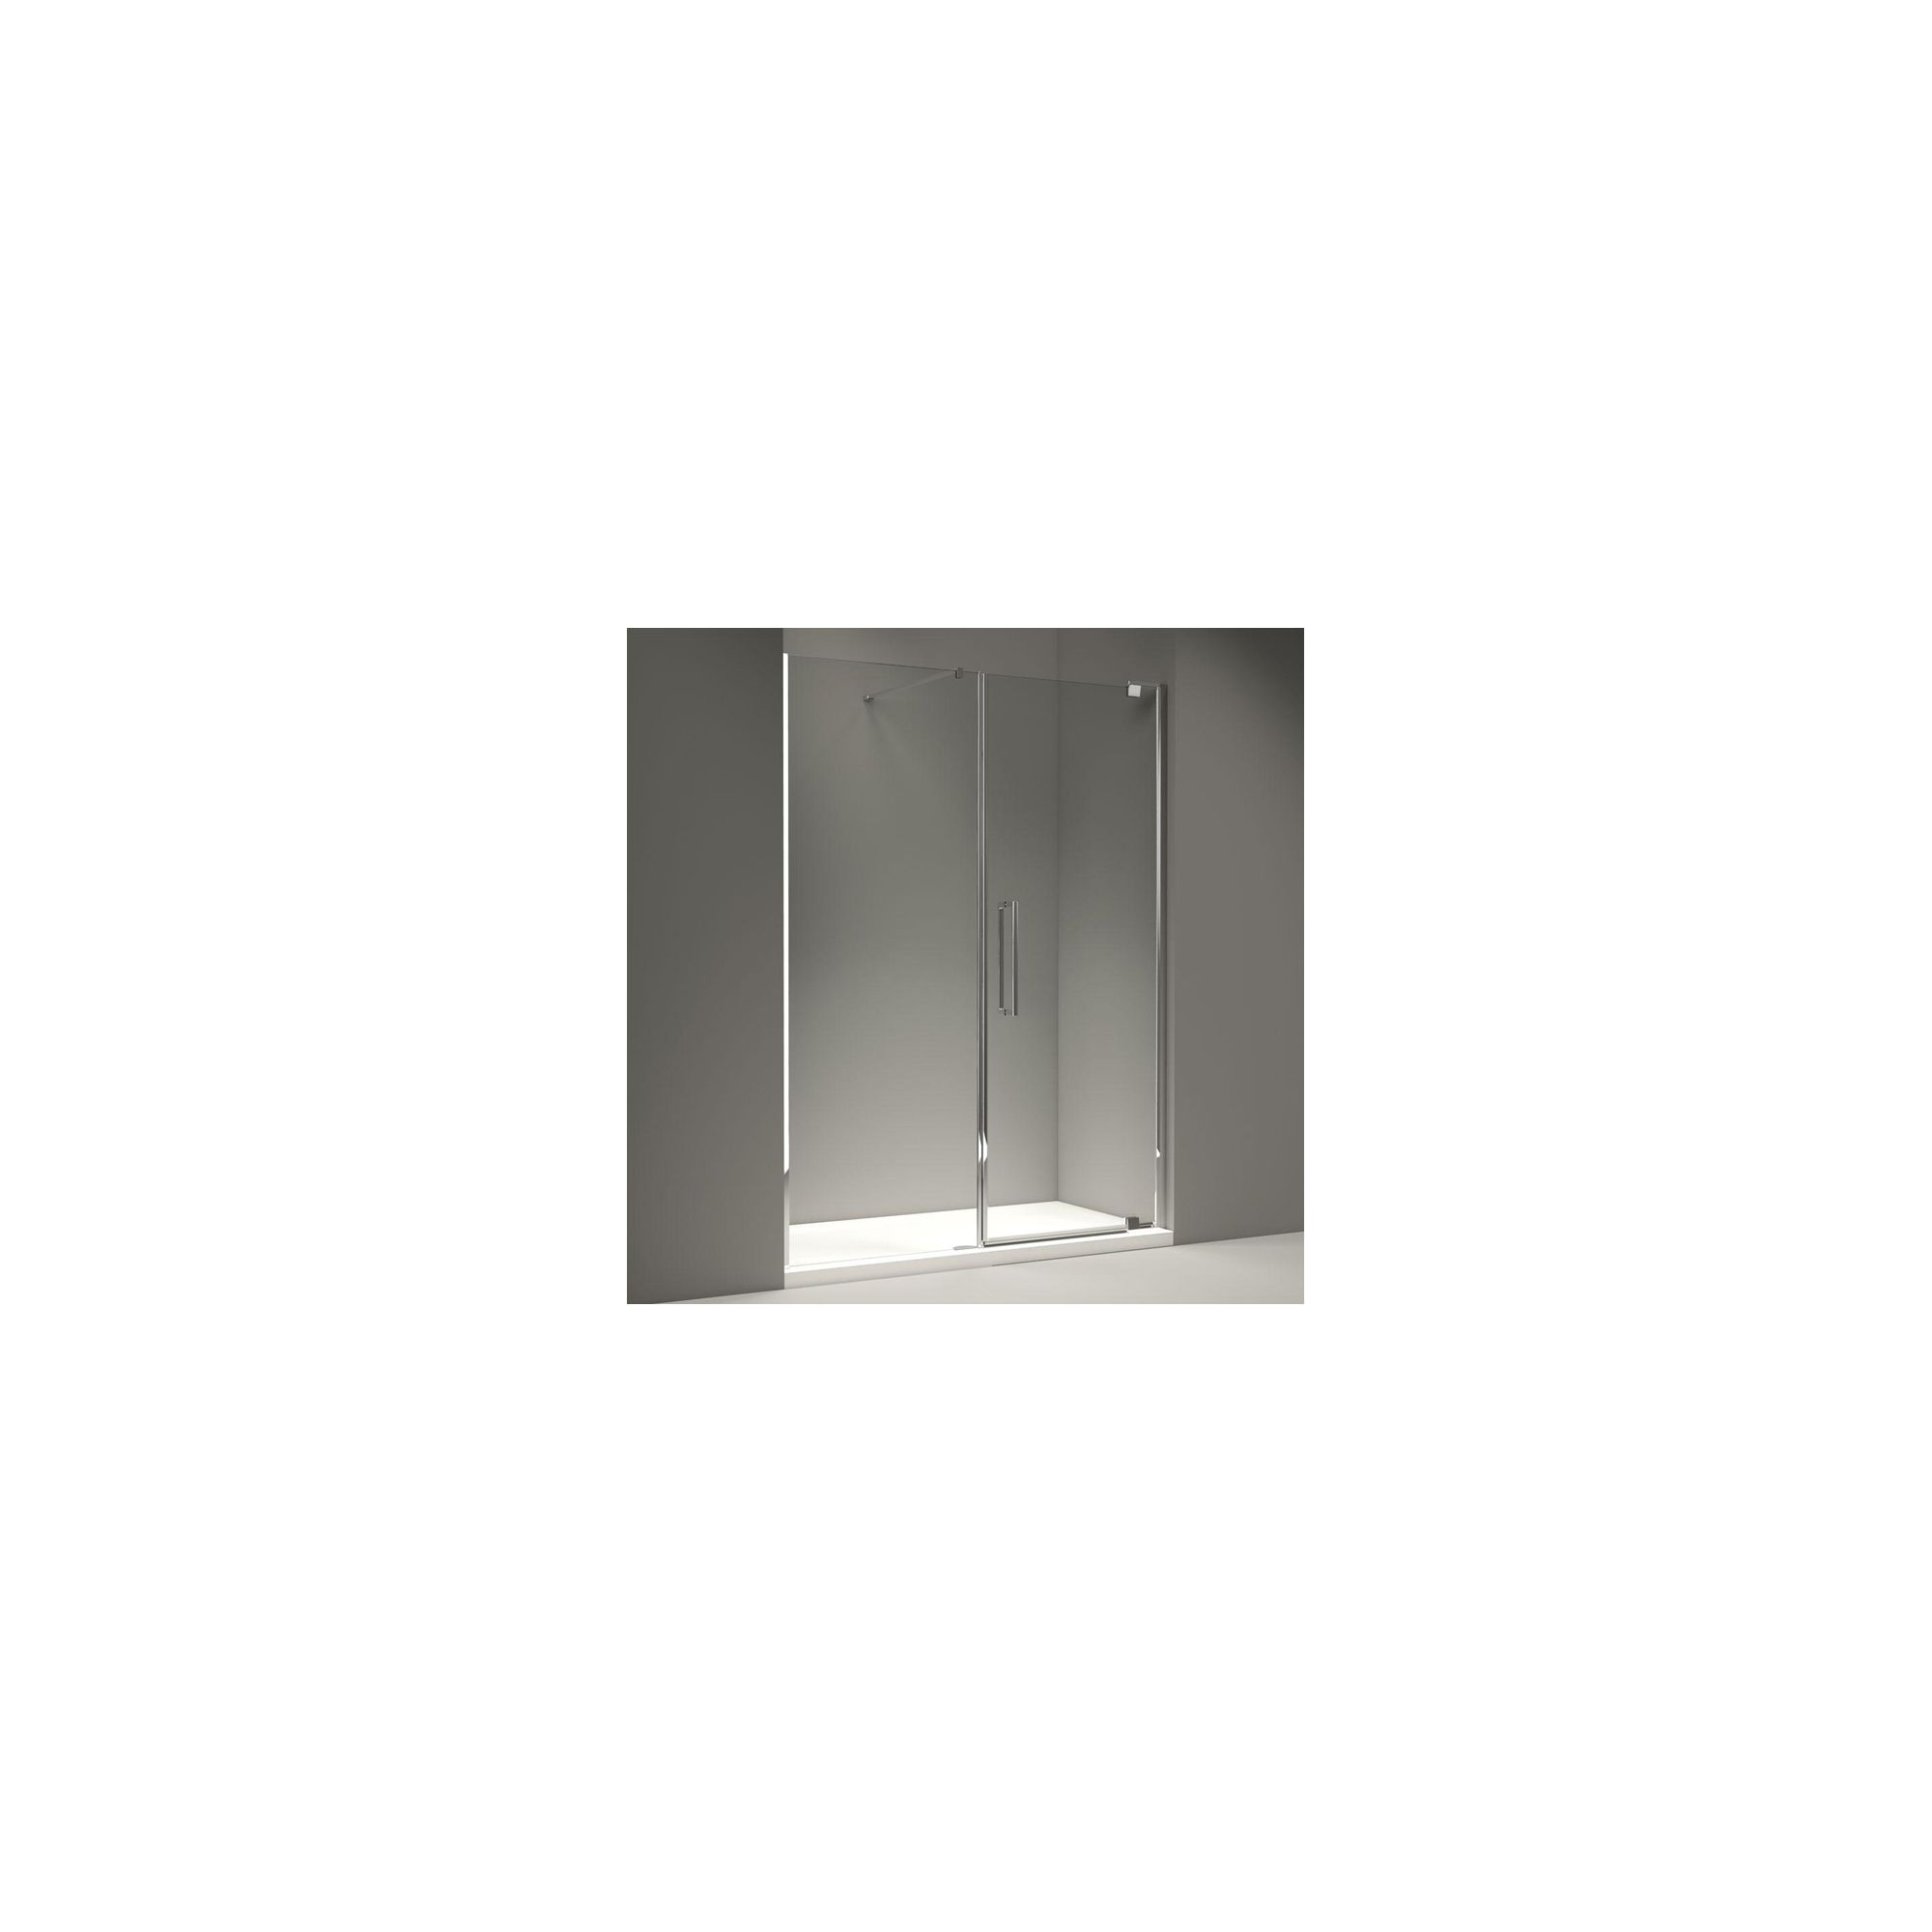 Merlyn Series 10 Inline Pivot Shower Door, 1600mm Wide, 10mm Clear Glass at Tesco Direct